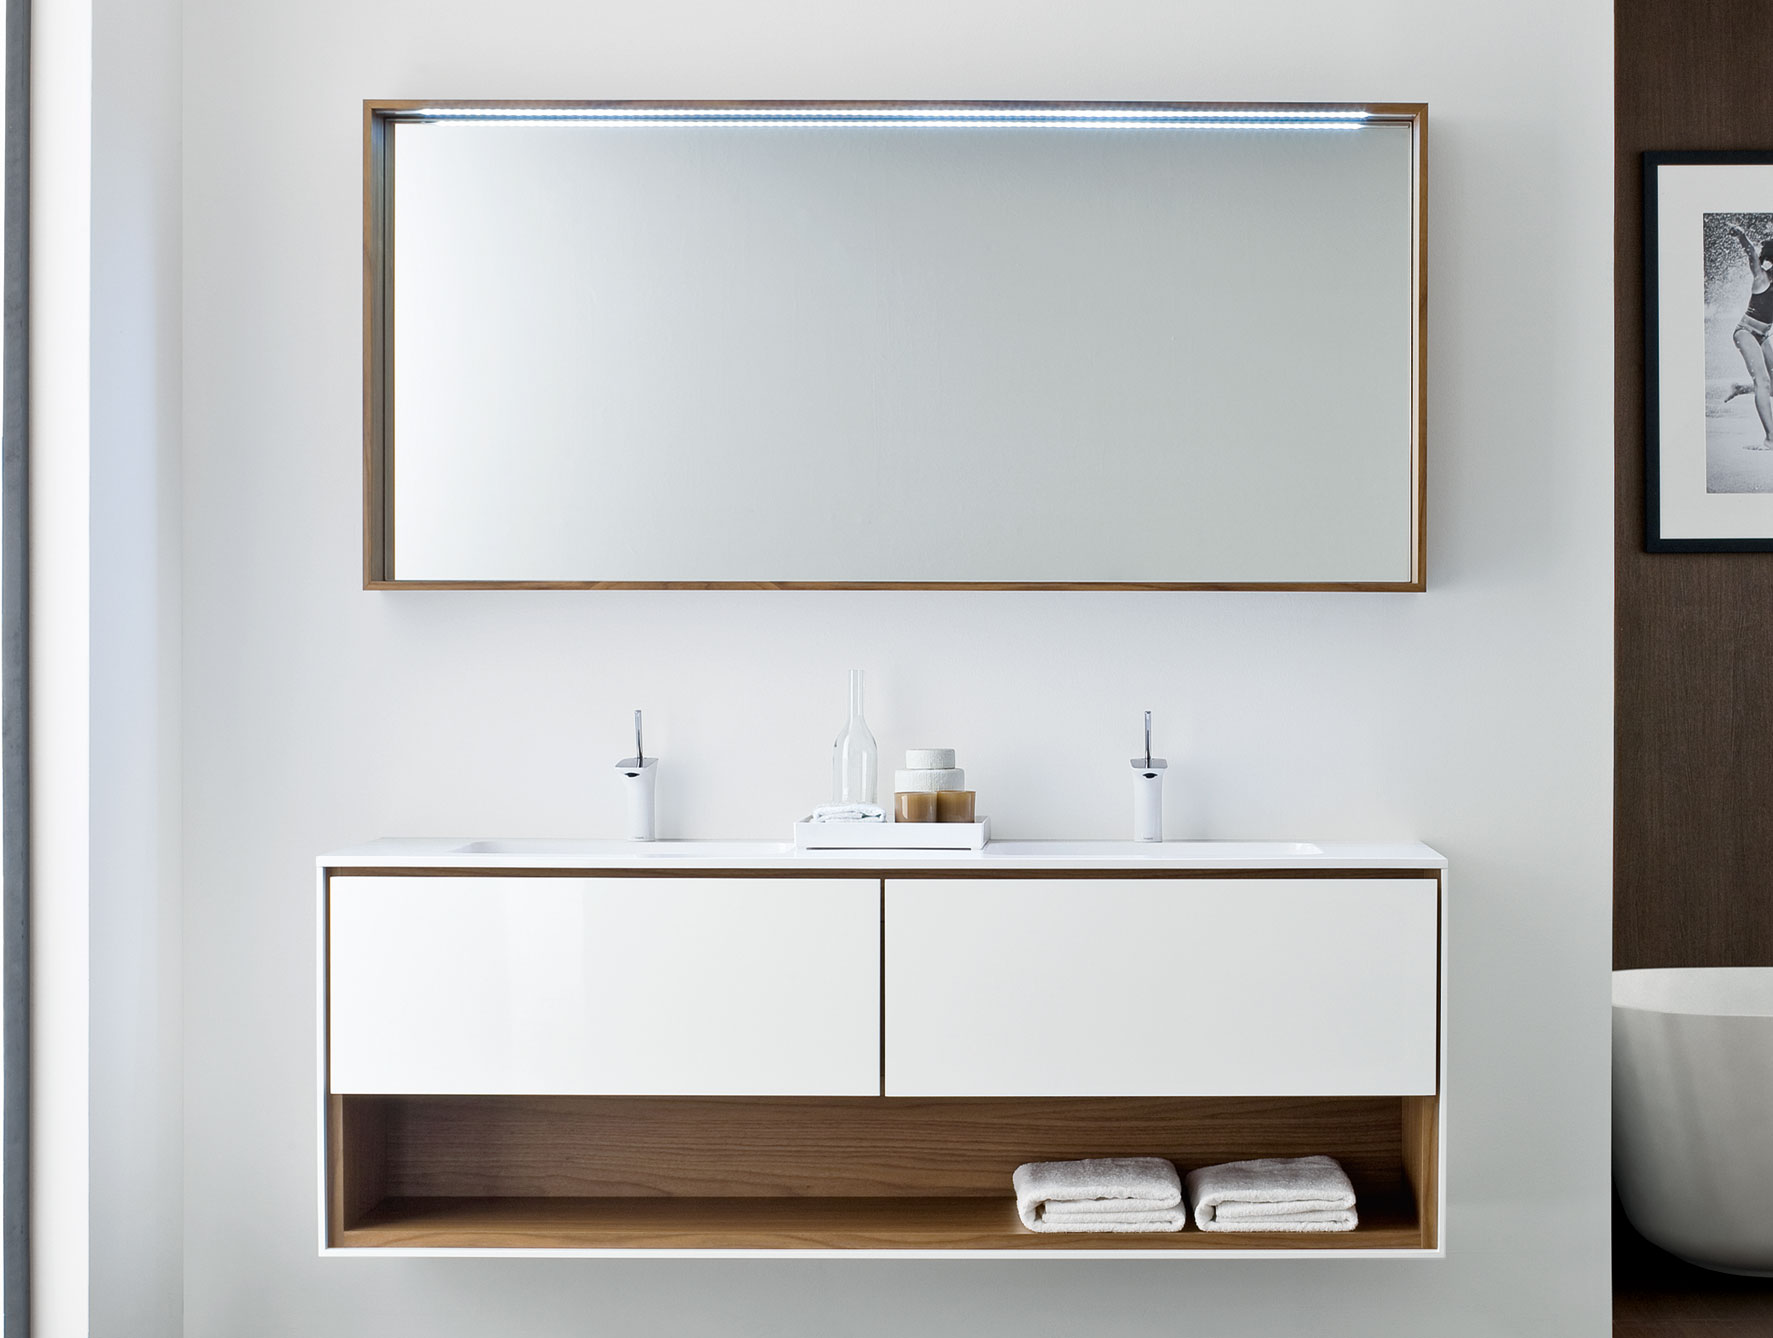 bathroom luxury bathroom accessories bathroom furniture cabinet. View In Gallery Bathroom Vanity With Storage From Nella Vetrina Luxury Accessories Furniture Cabinet Y